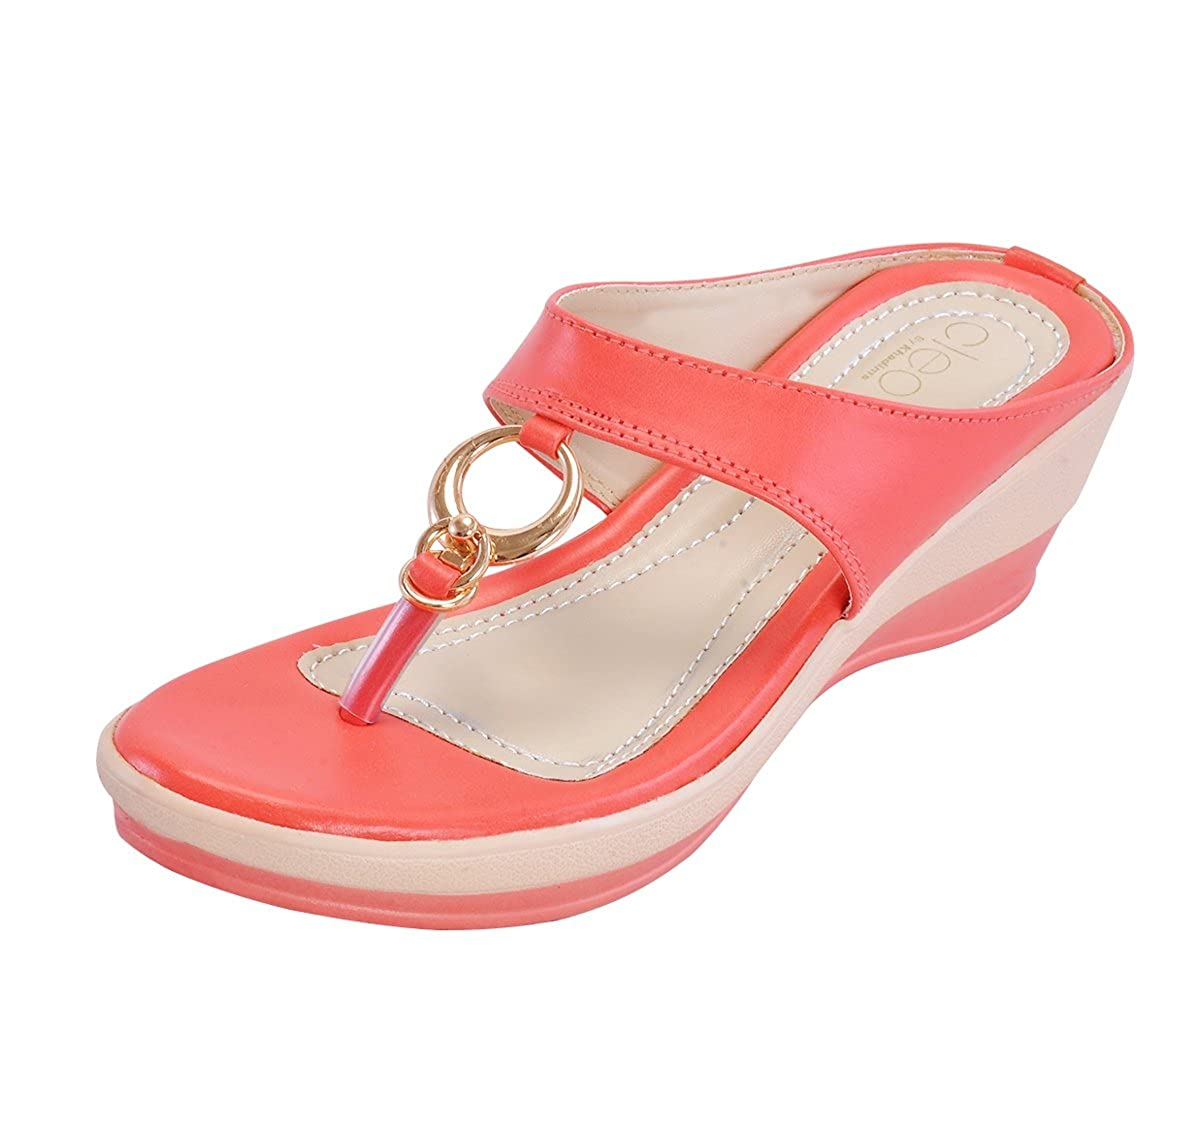 Cleo Khadim's Women's Faux Leather Pink Wedges - 5